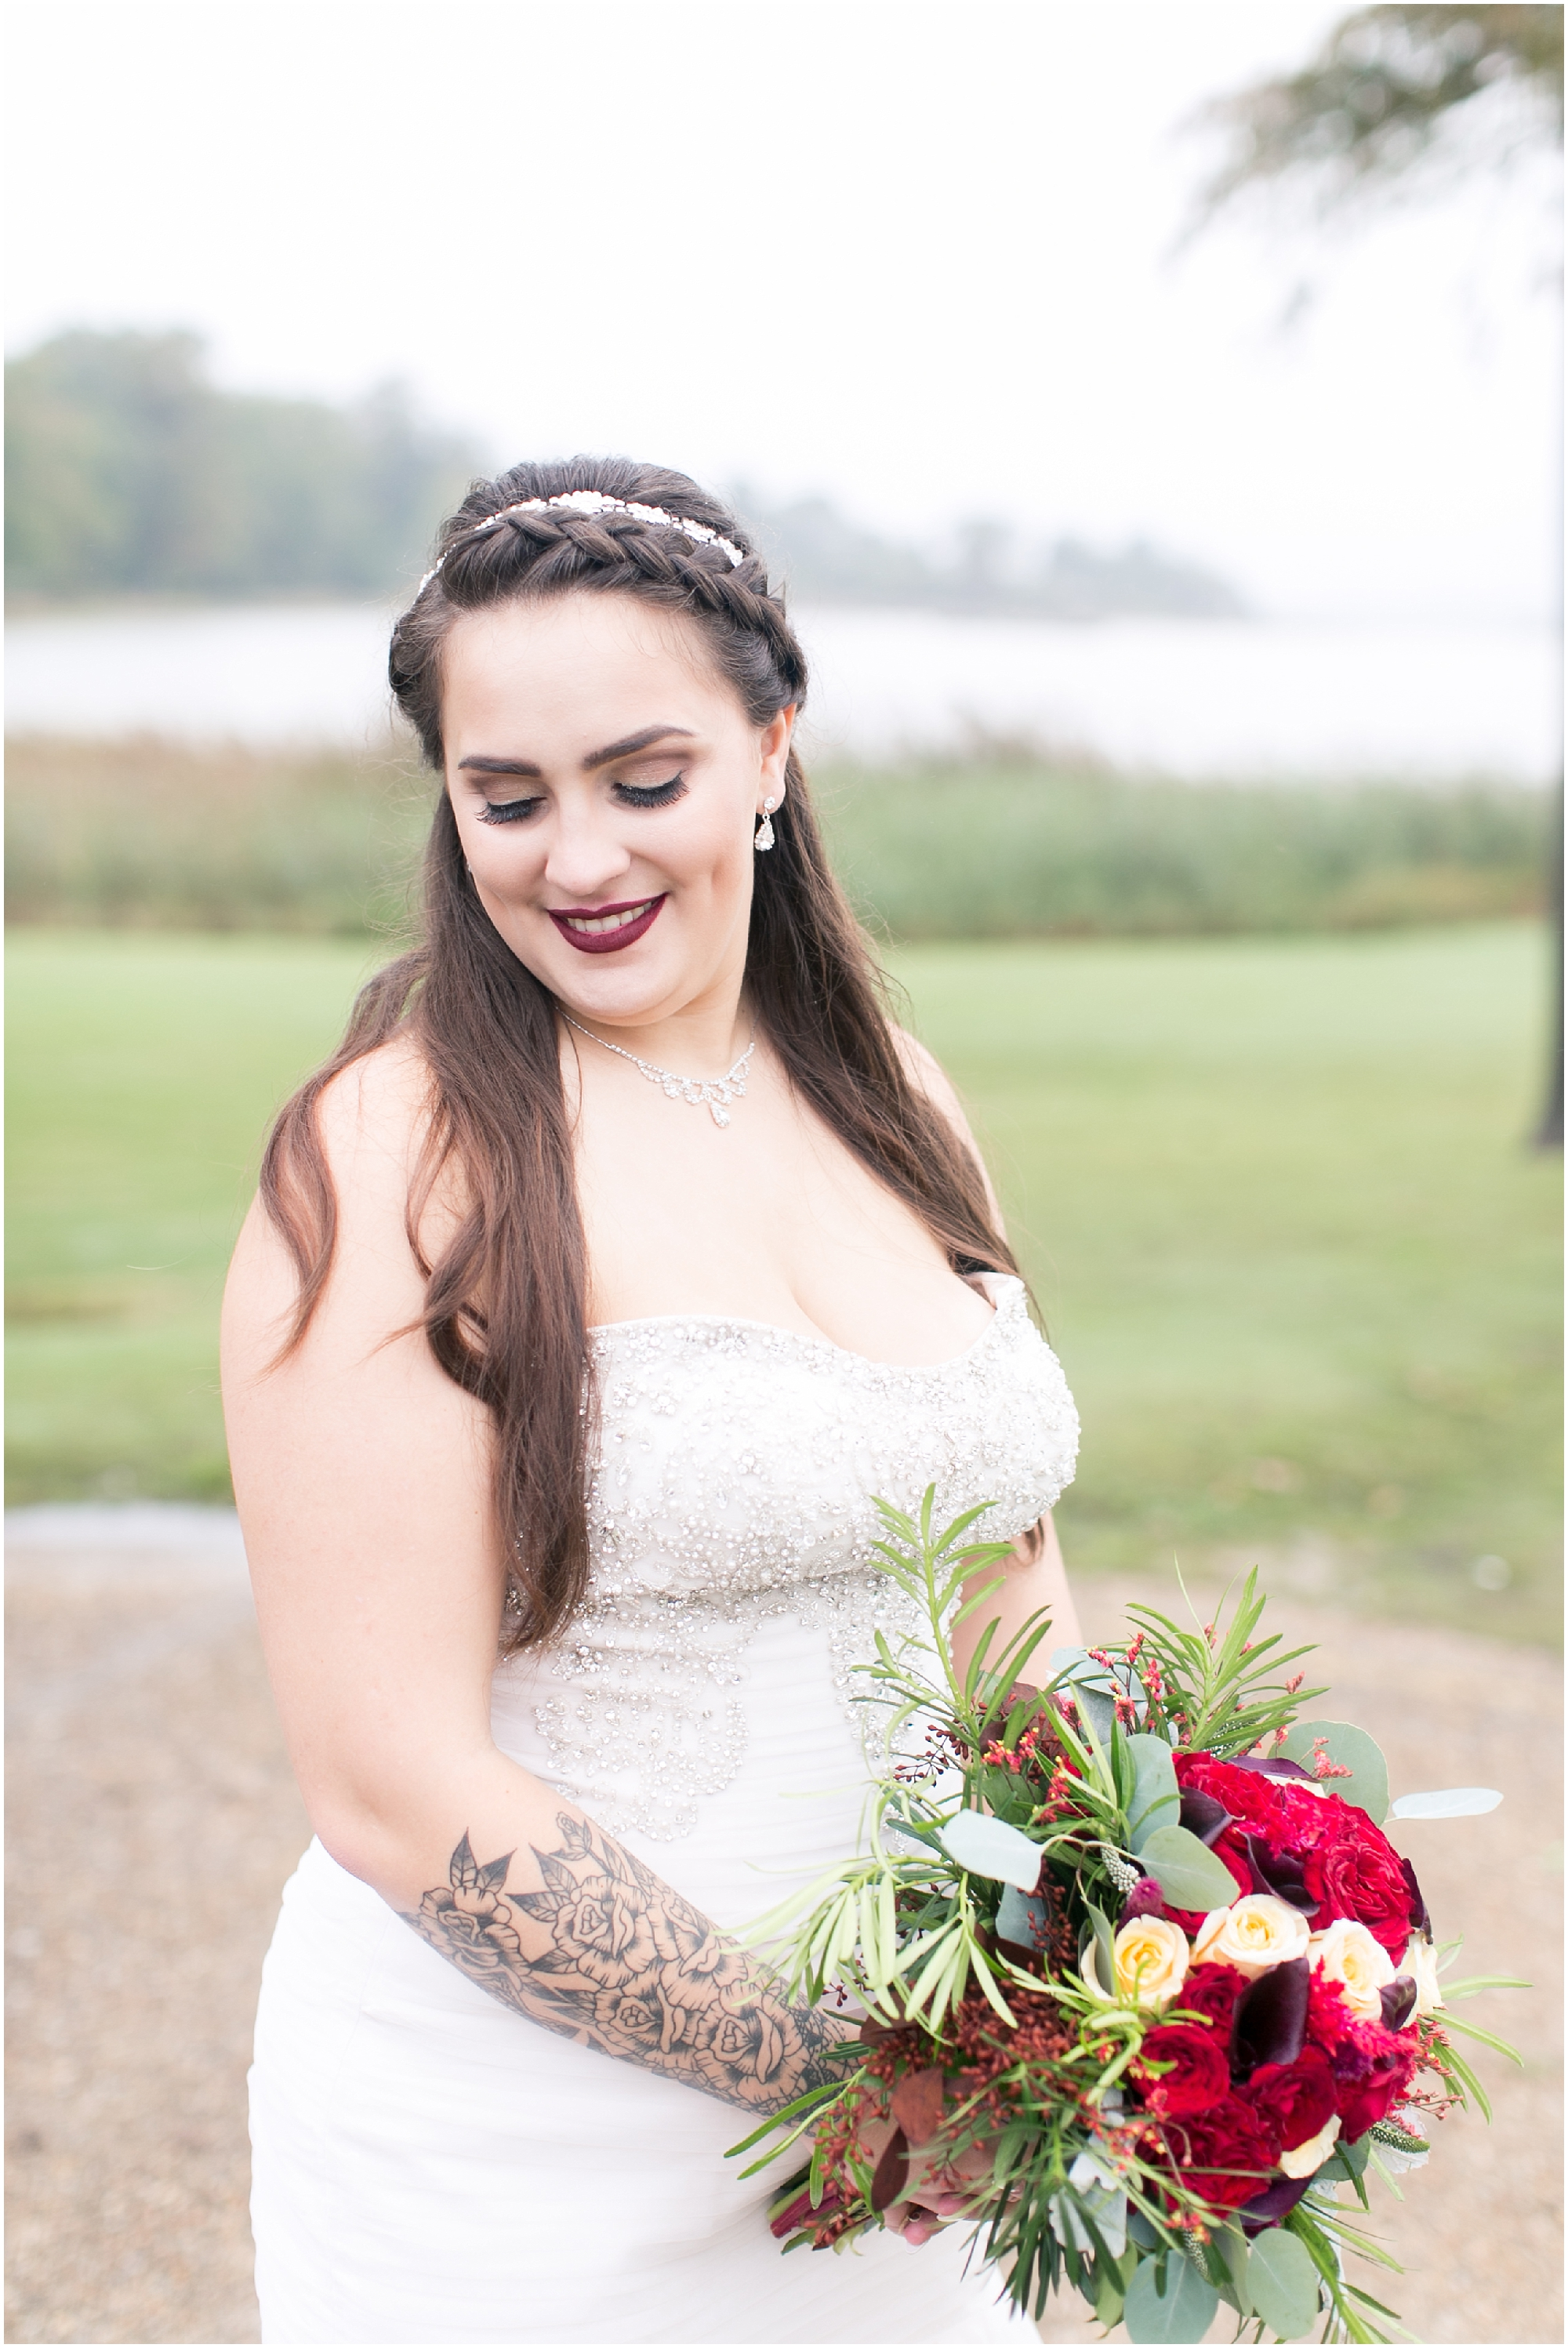 here and now bridal wedding dress, studio i do groom, suit, gourmet gang, fall wedding flowers, bailey galifant makeup artist and hair stylist, obici house wedding in suffolk virginia, virginia wedding photographer